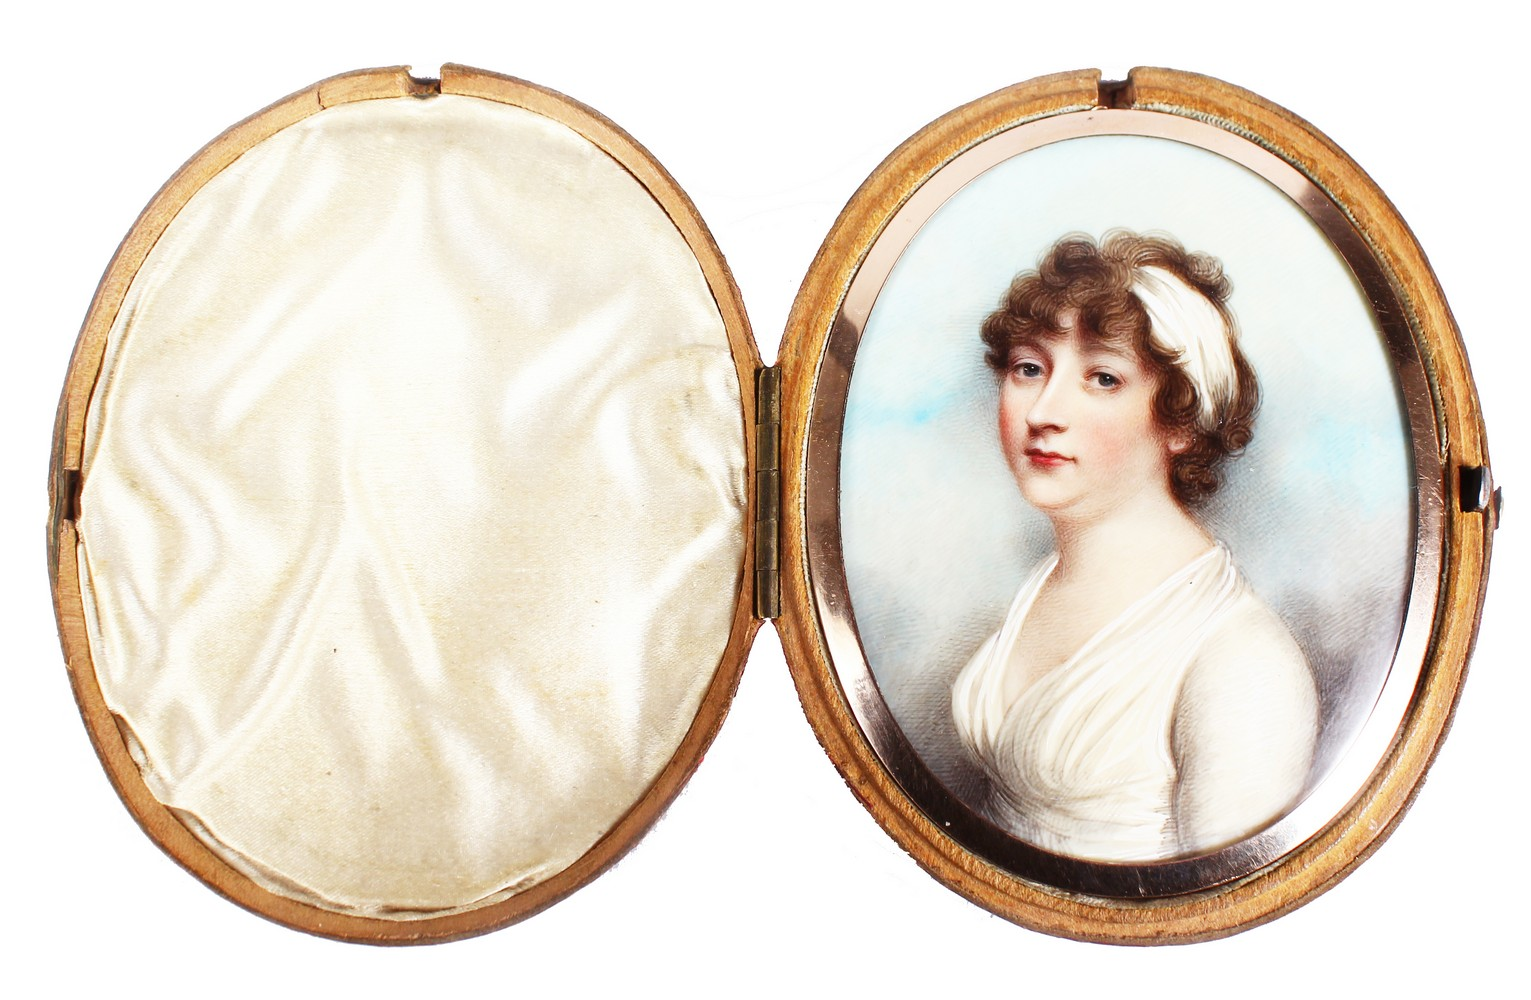 ANDREW PLIMER (1763 - 1837) A FINE OVAL PORTRAIT OF LADY GRAHAM, wearing a white headband and - Image 4 of 4